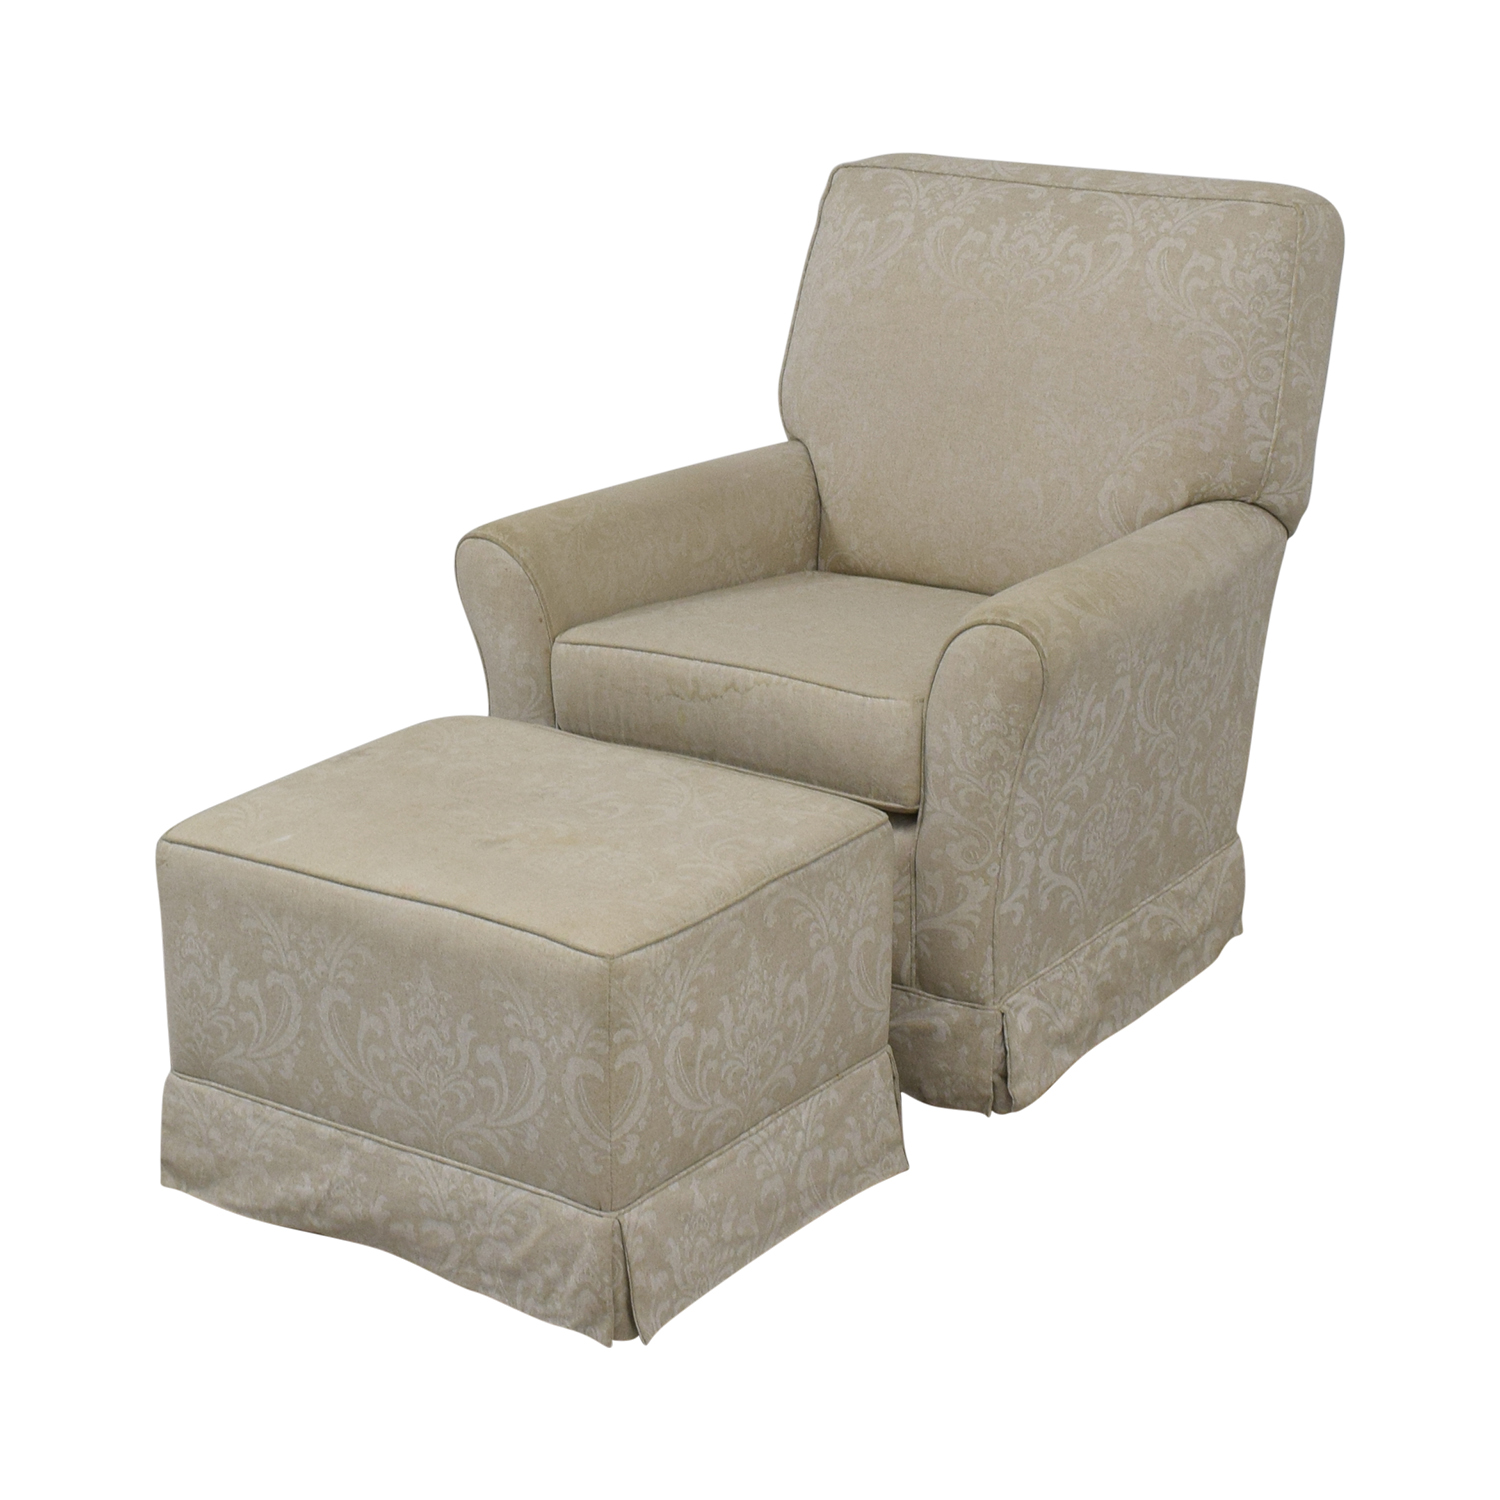 Slipcover Glider Chair and Ottoman discount